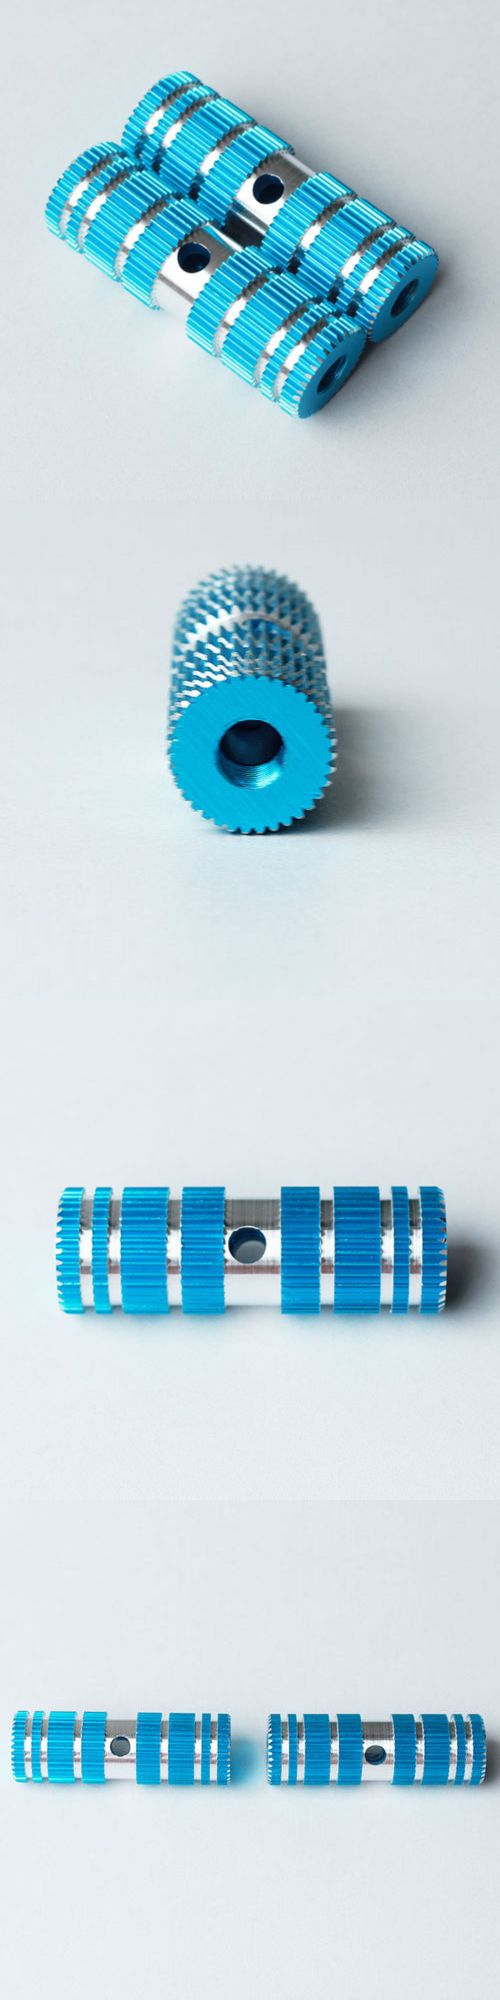 Pegs 106943: 4Pc Composite Aluminum Metal Bike Foot Pegs Small Gear Style Ridged (Blue) -> BUY IT NOW ONLY: $49.79 on eBay!